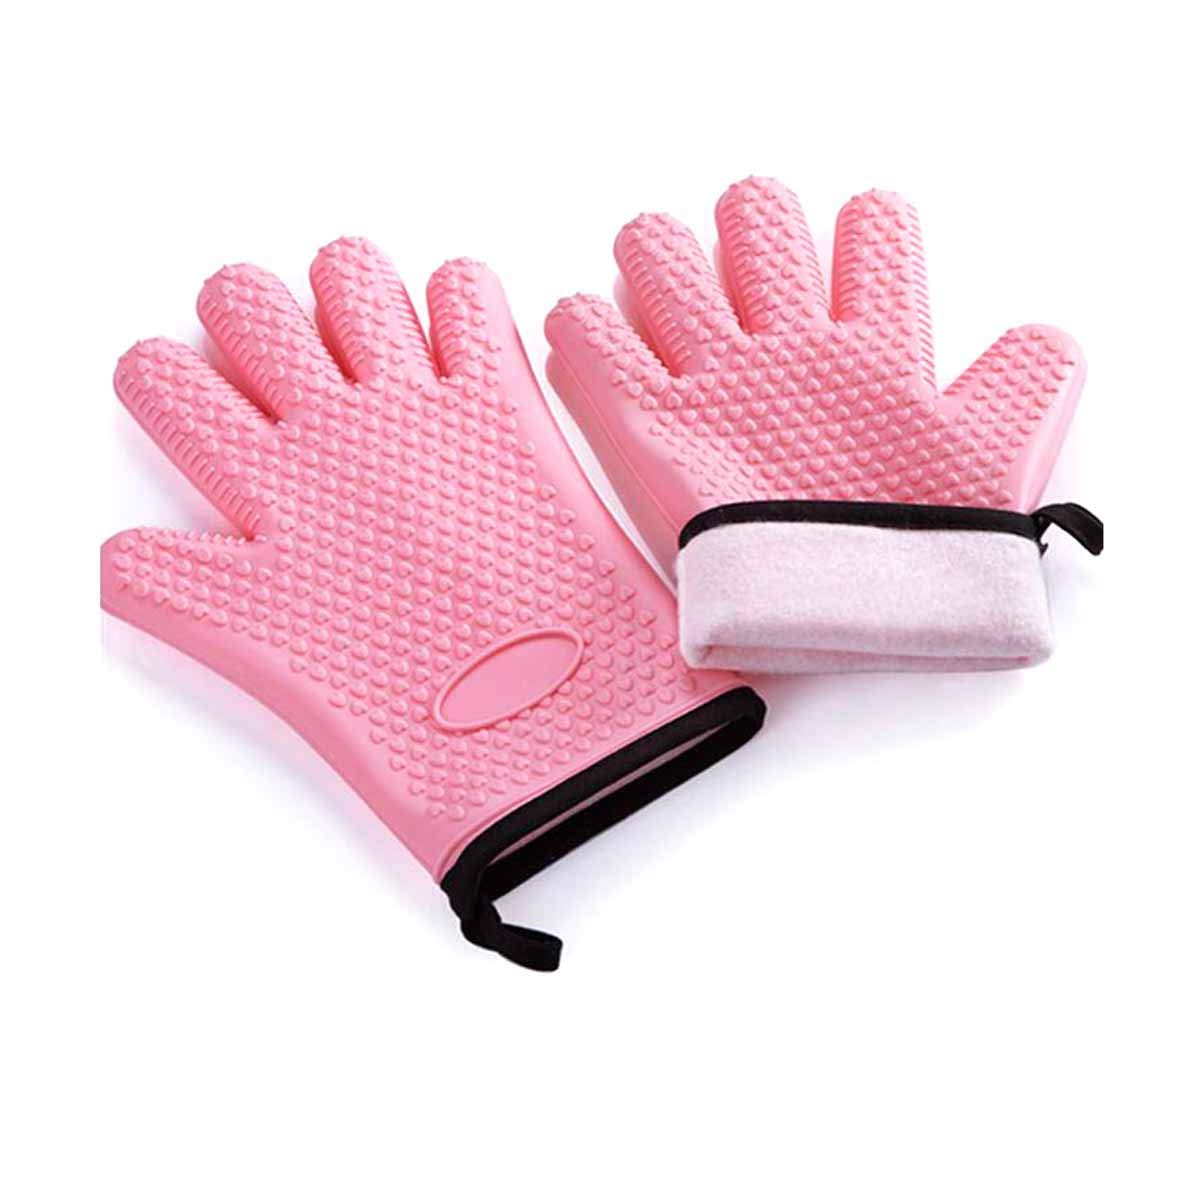 Haoyunlaifentiao Anti-scalding Gloves, Silicone Microwave Oven Insulated Gloves, Oven High Temperature Resistant Kitchen (Color : Pink)